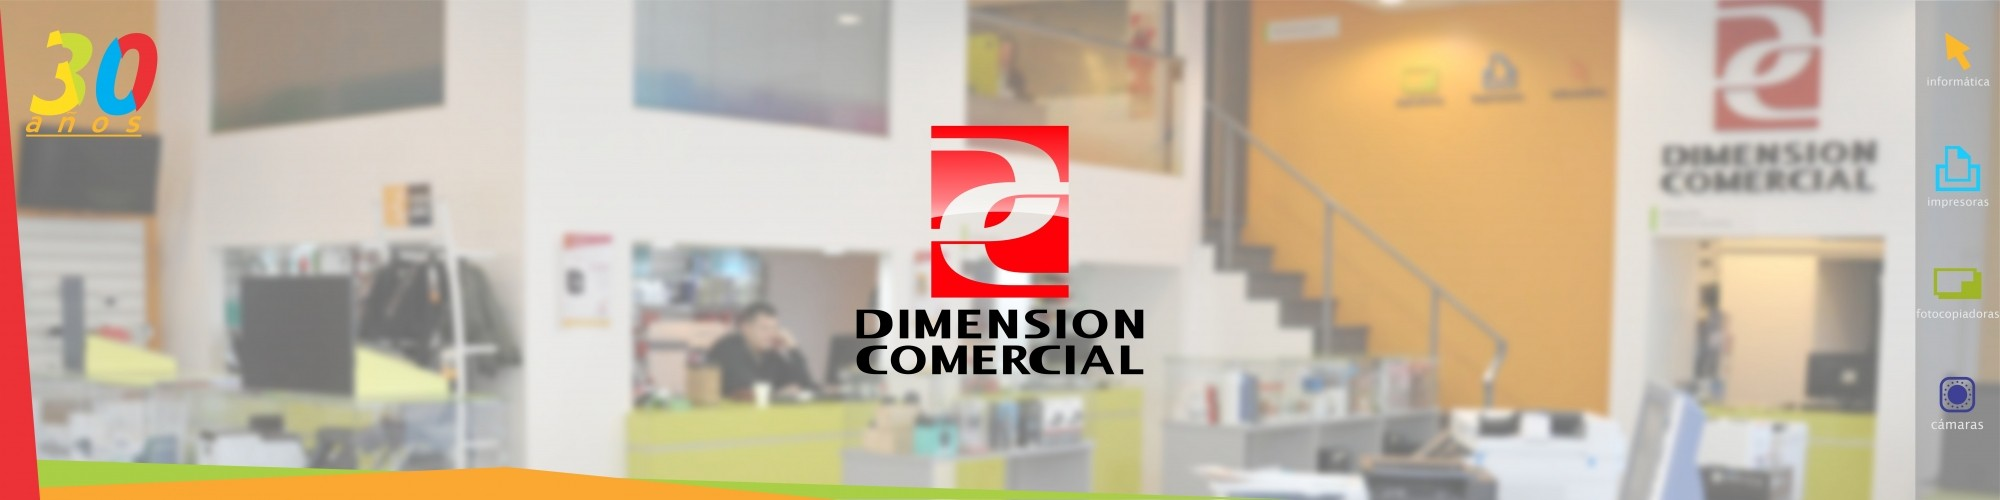 DIMENSION COMERCIAL SRL